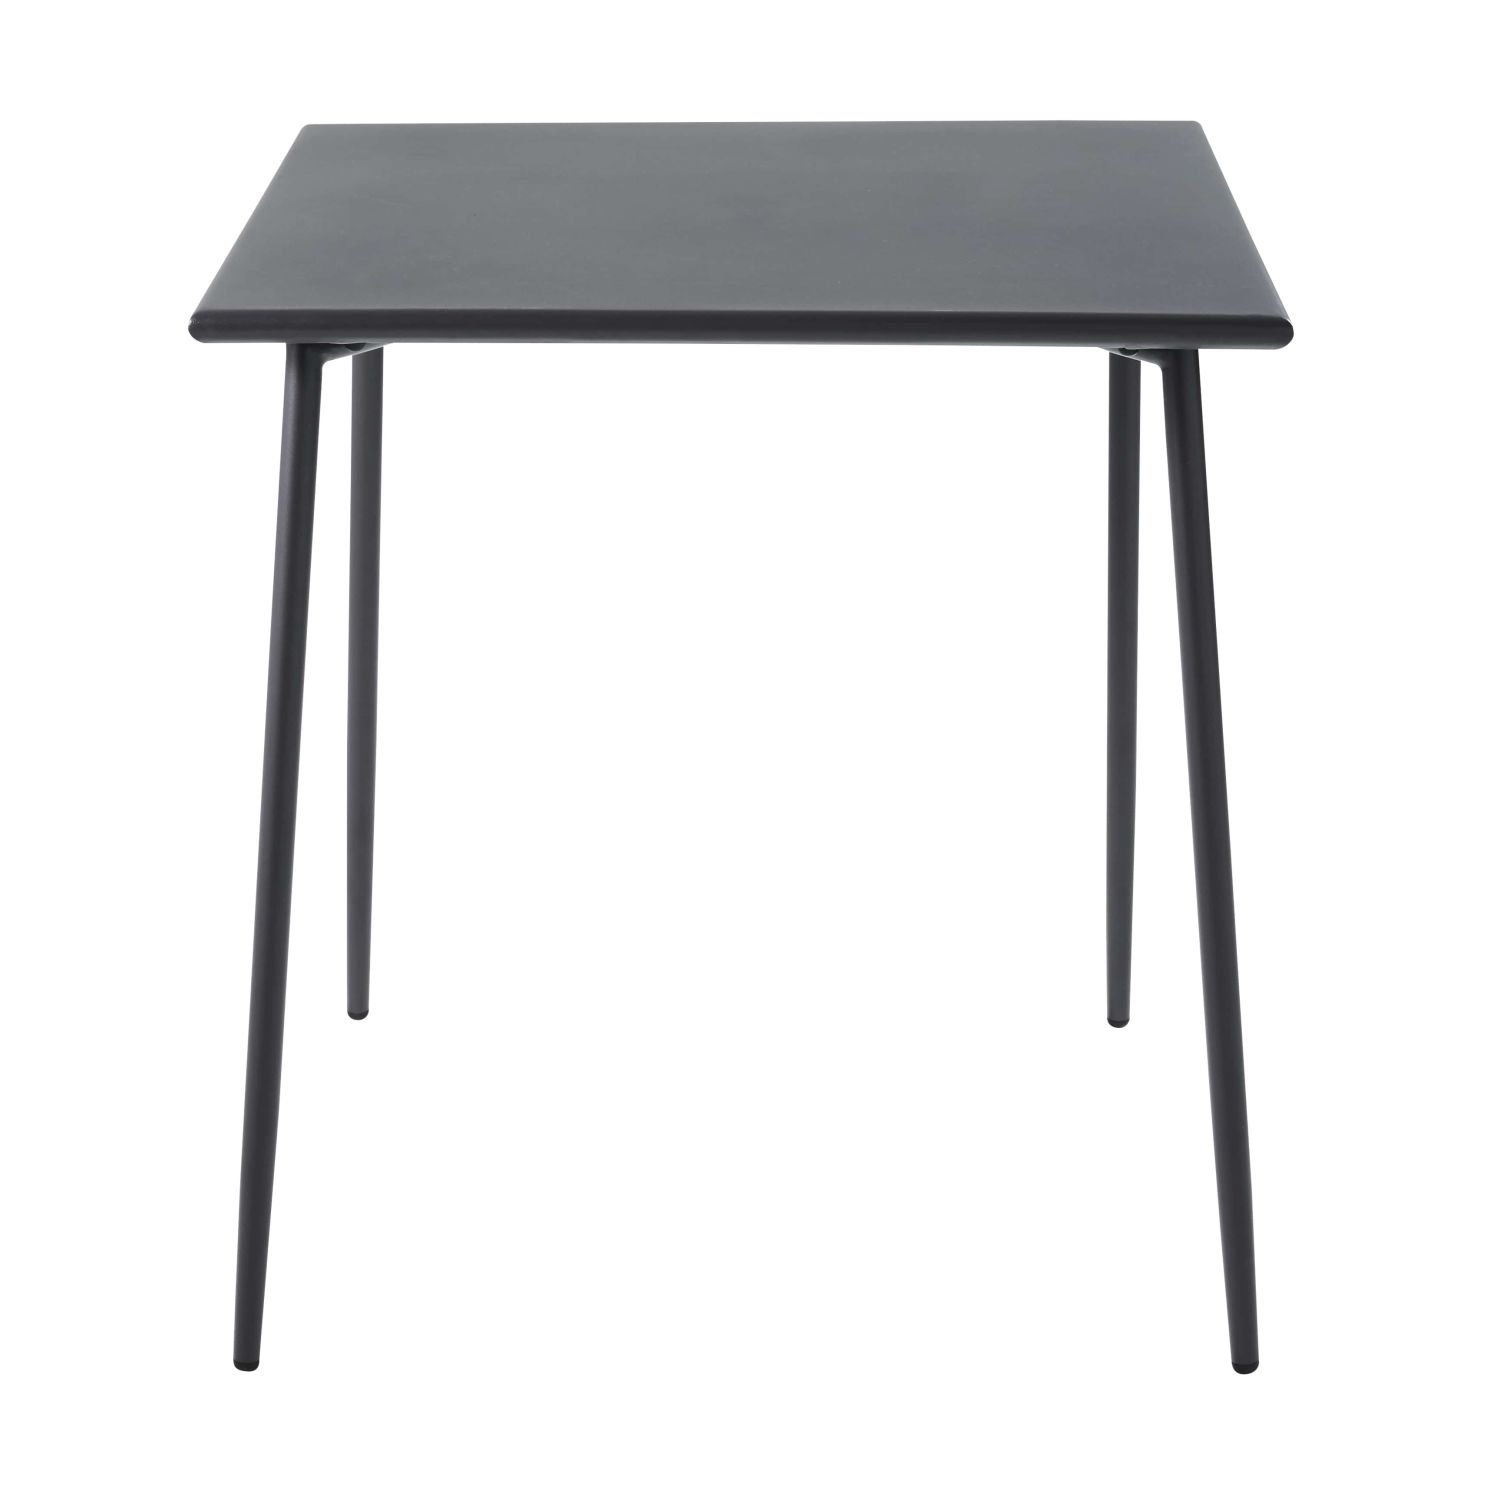 table de jardin carr e en m tal gris anthracite l70. Black Bedroom Furniture Sets. Home Design Ideas